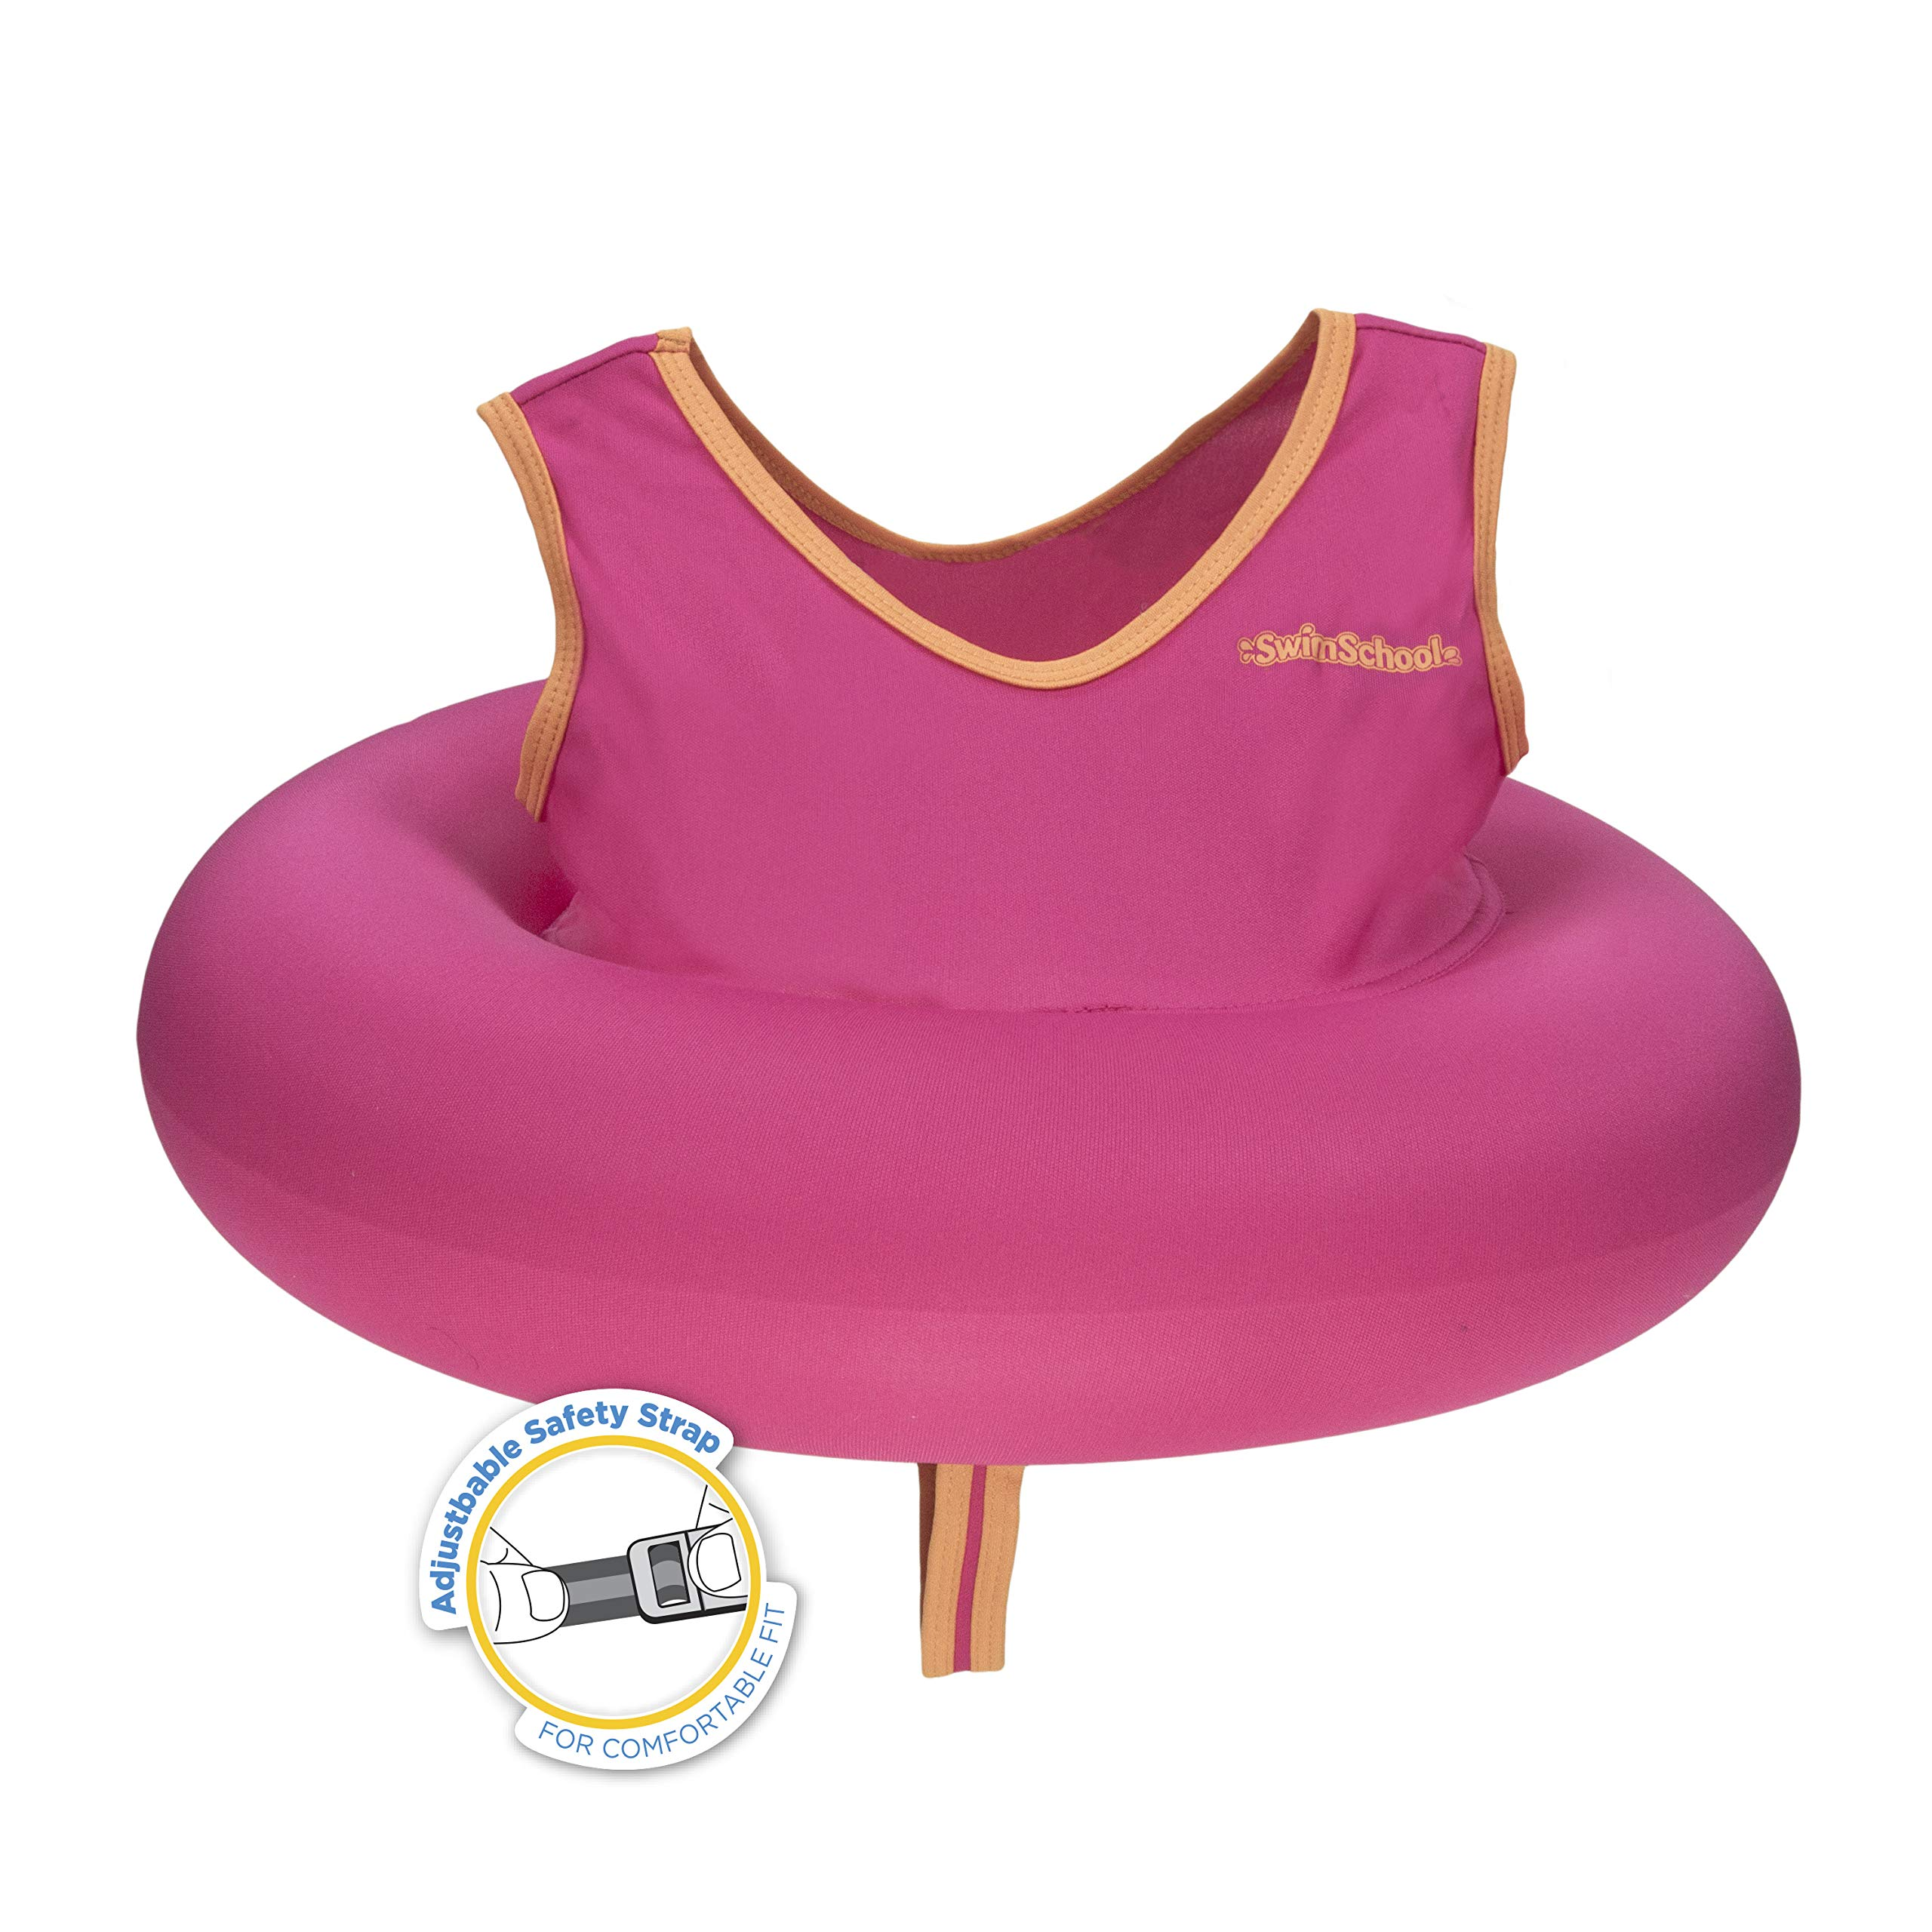 SwimSchool Deluxe TOT Swim Trainer Vest, Heavy Duty, Inflatable Tube with Adjustable Safety Strap, 2-4 Years, Raspberry/Pink by SwimSchool (Image #4)